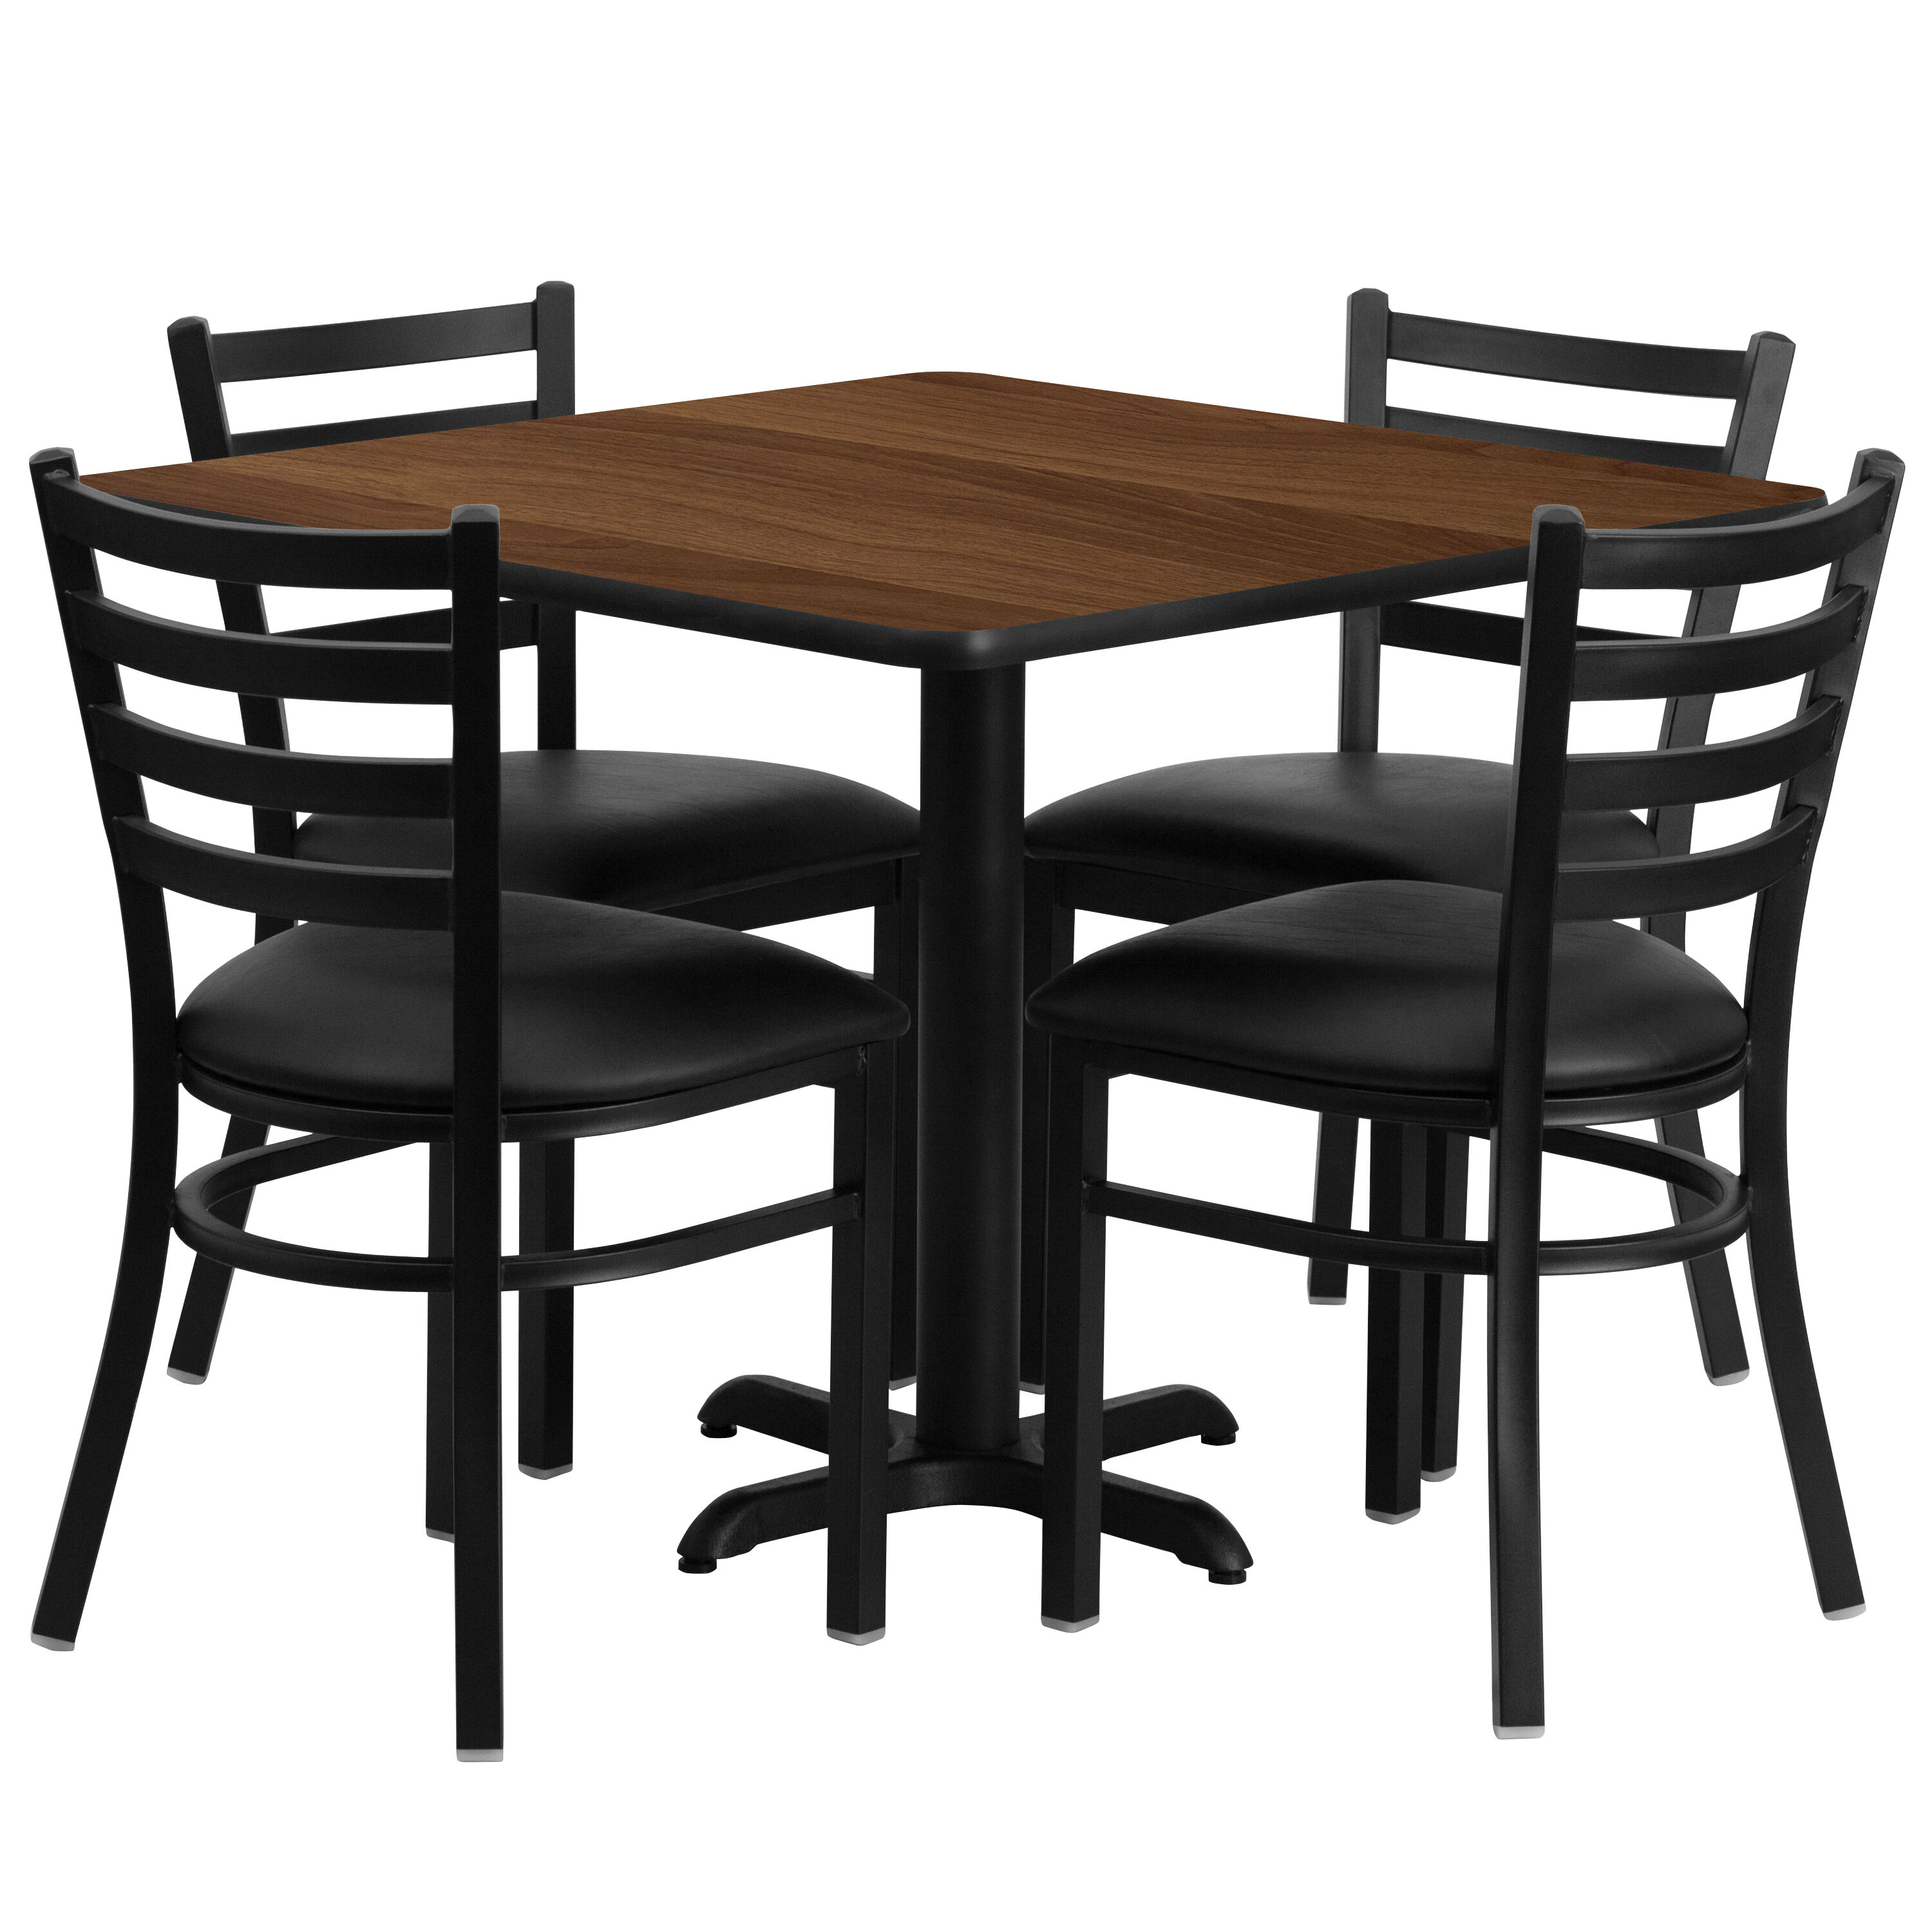 Ordinaire 36u0027u0027 Square Walnut Laminate Table Set With Ladder Back Metal Chair And  Black Vinyl Seat, Seats 4